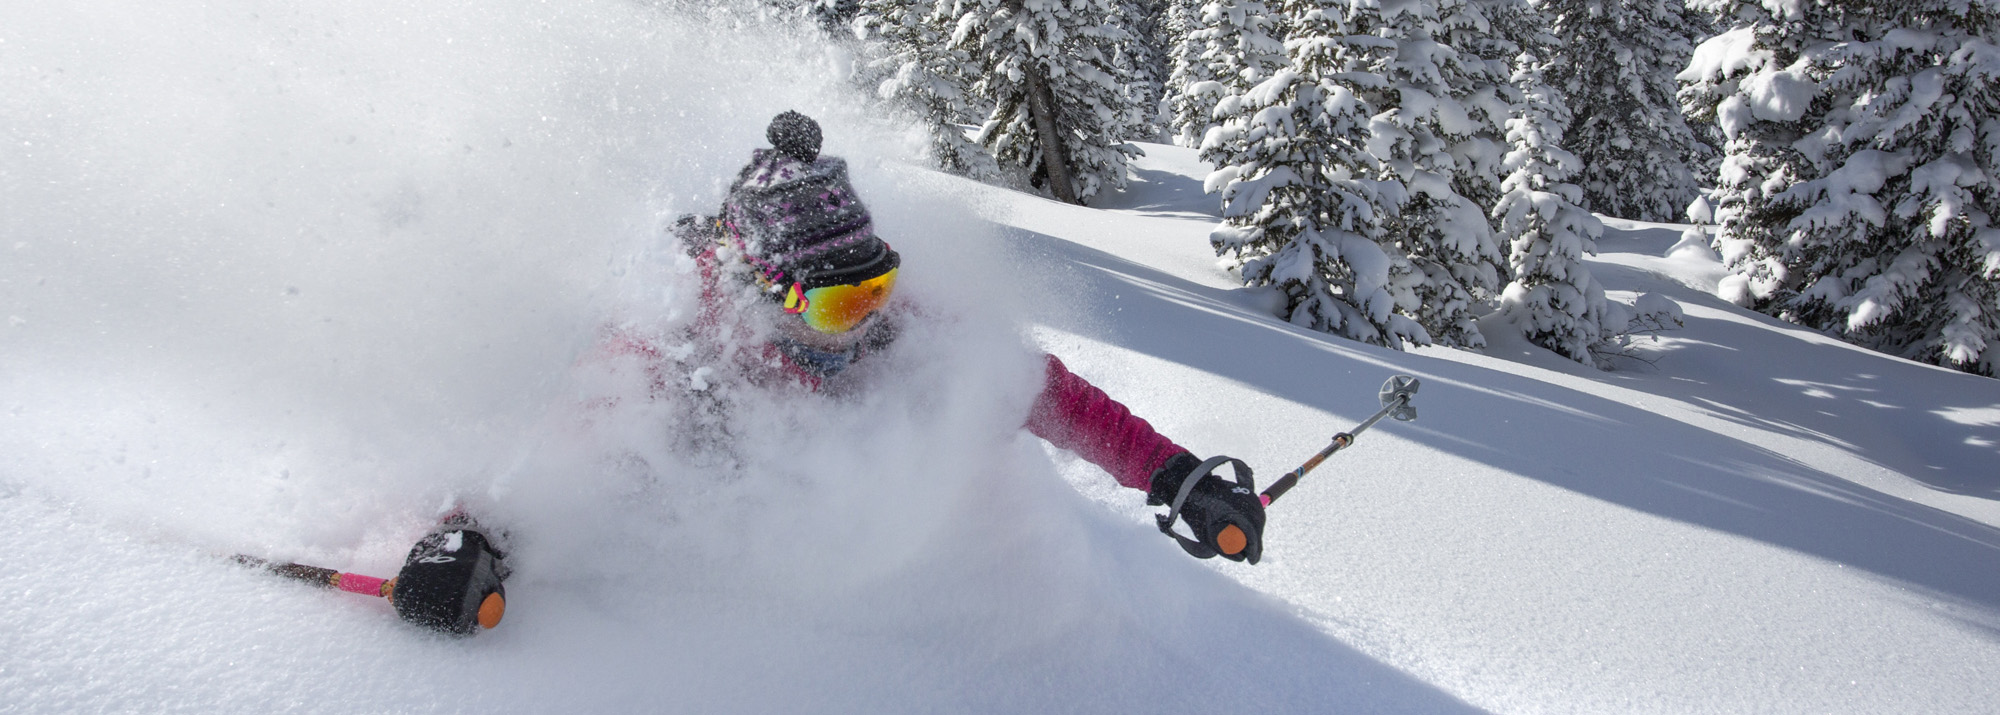 Teton Backcountry Powder – Photo: David Stubbs